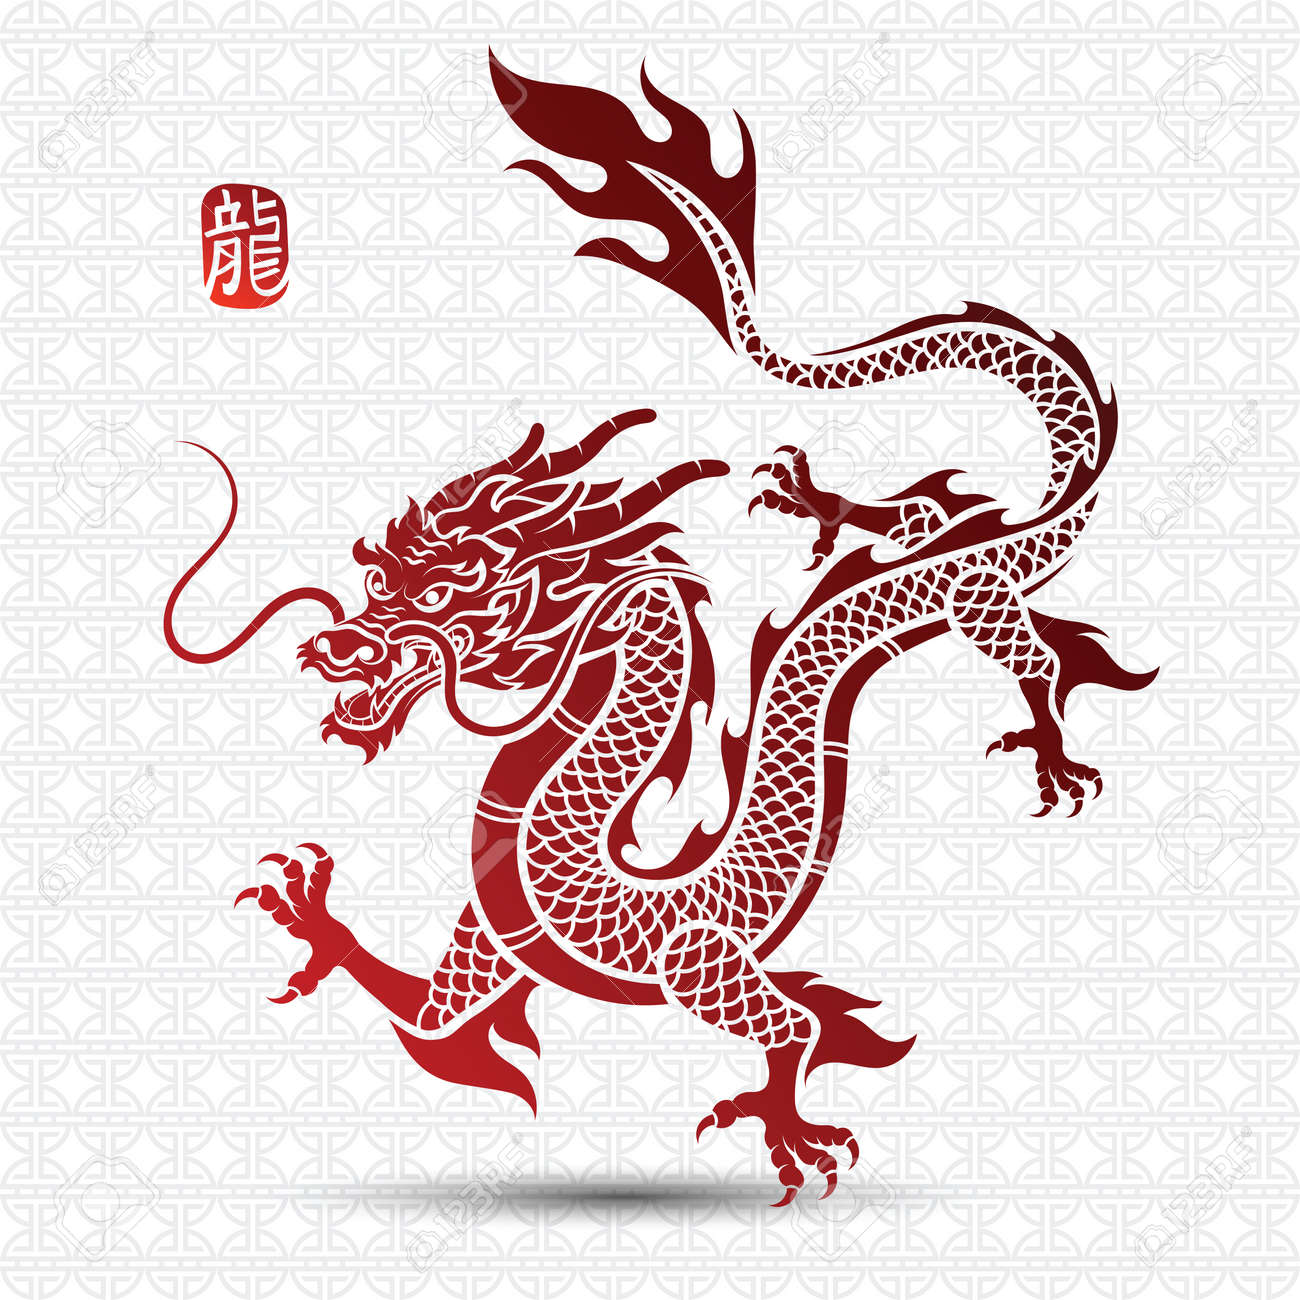 Dragon Chinois illustration de dragon chinois traditionnel caractère chinois